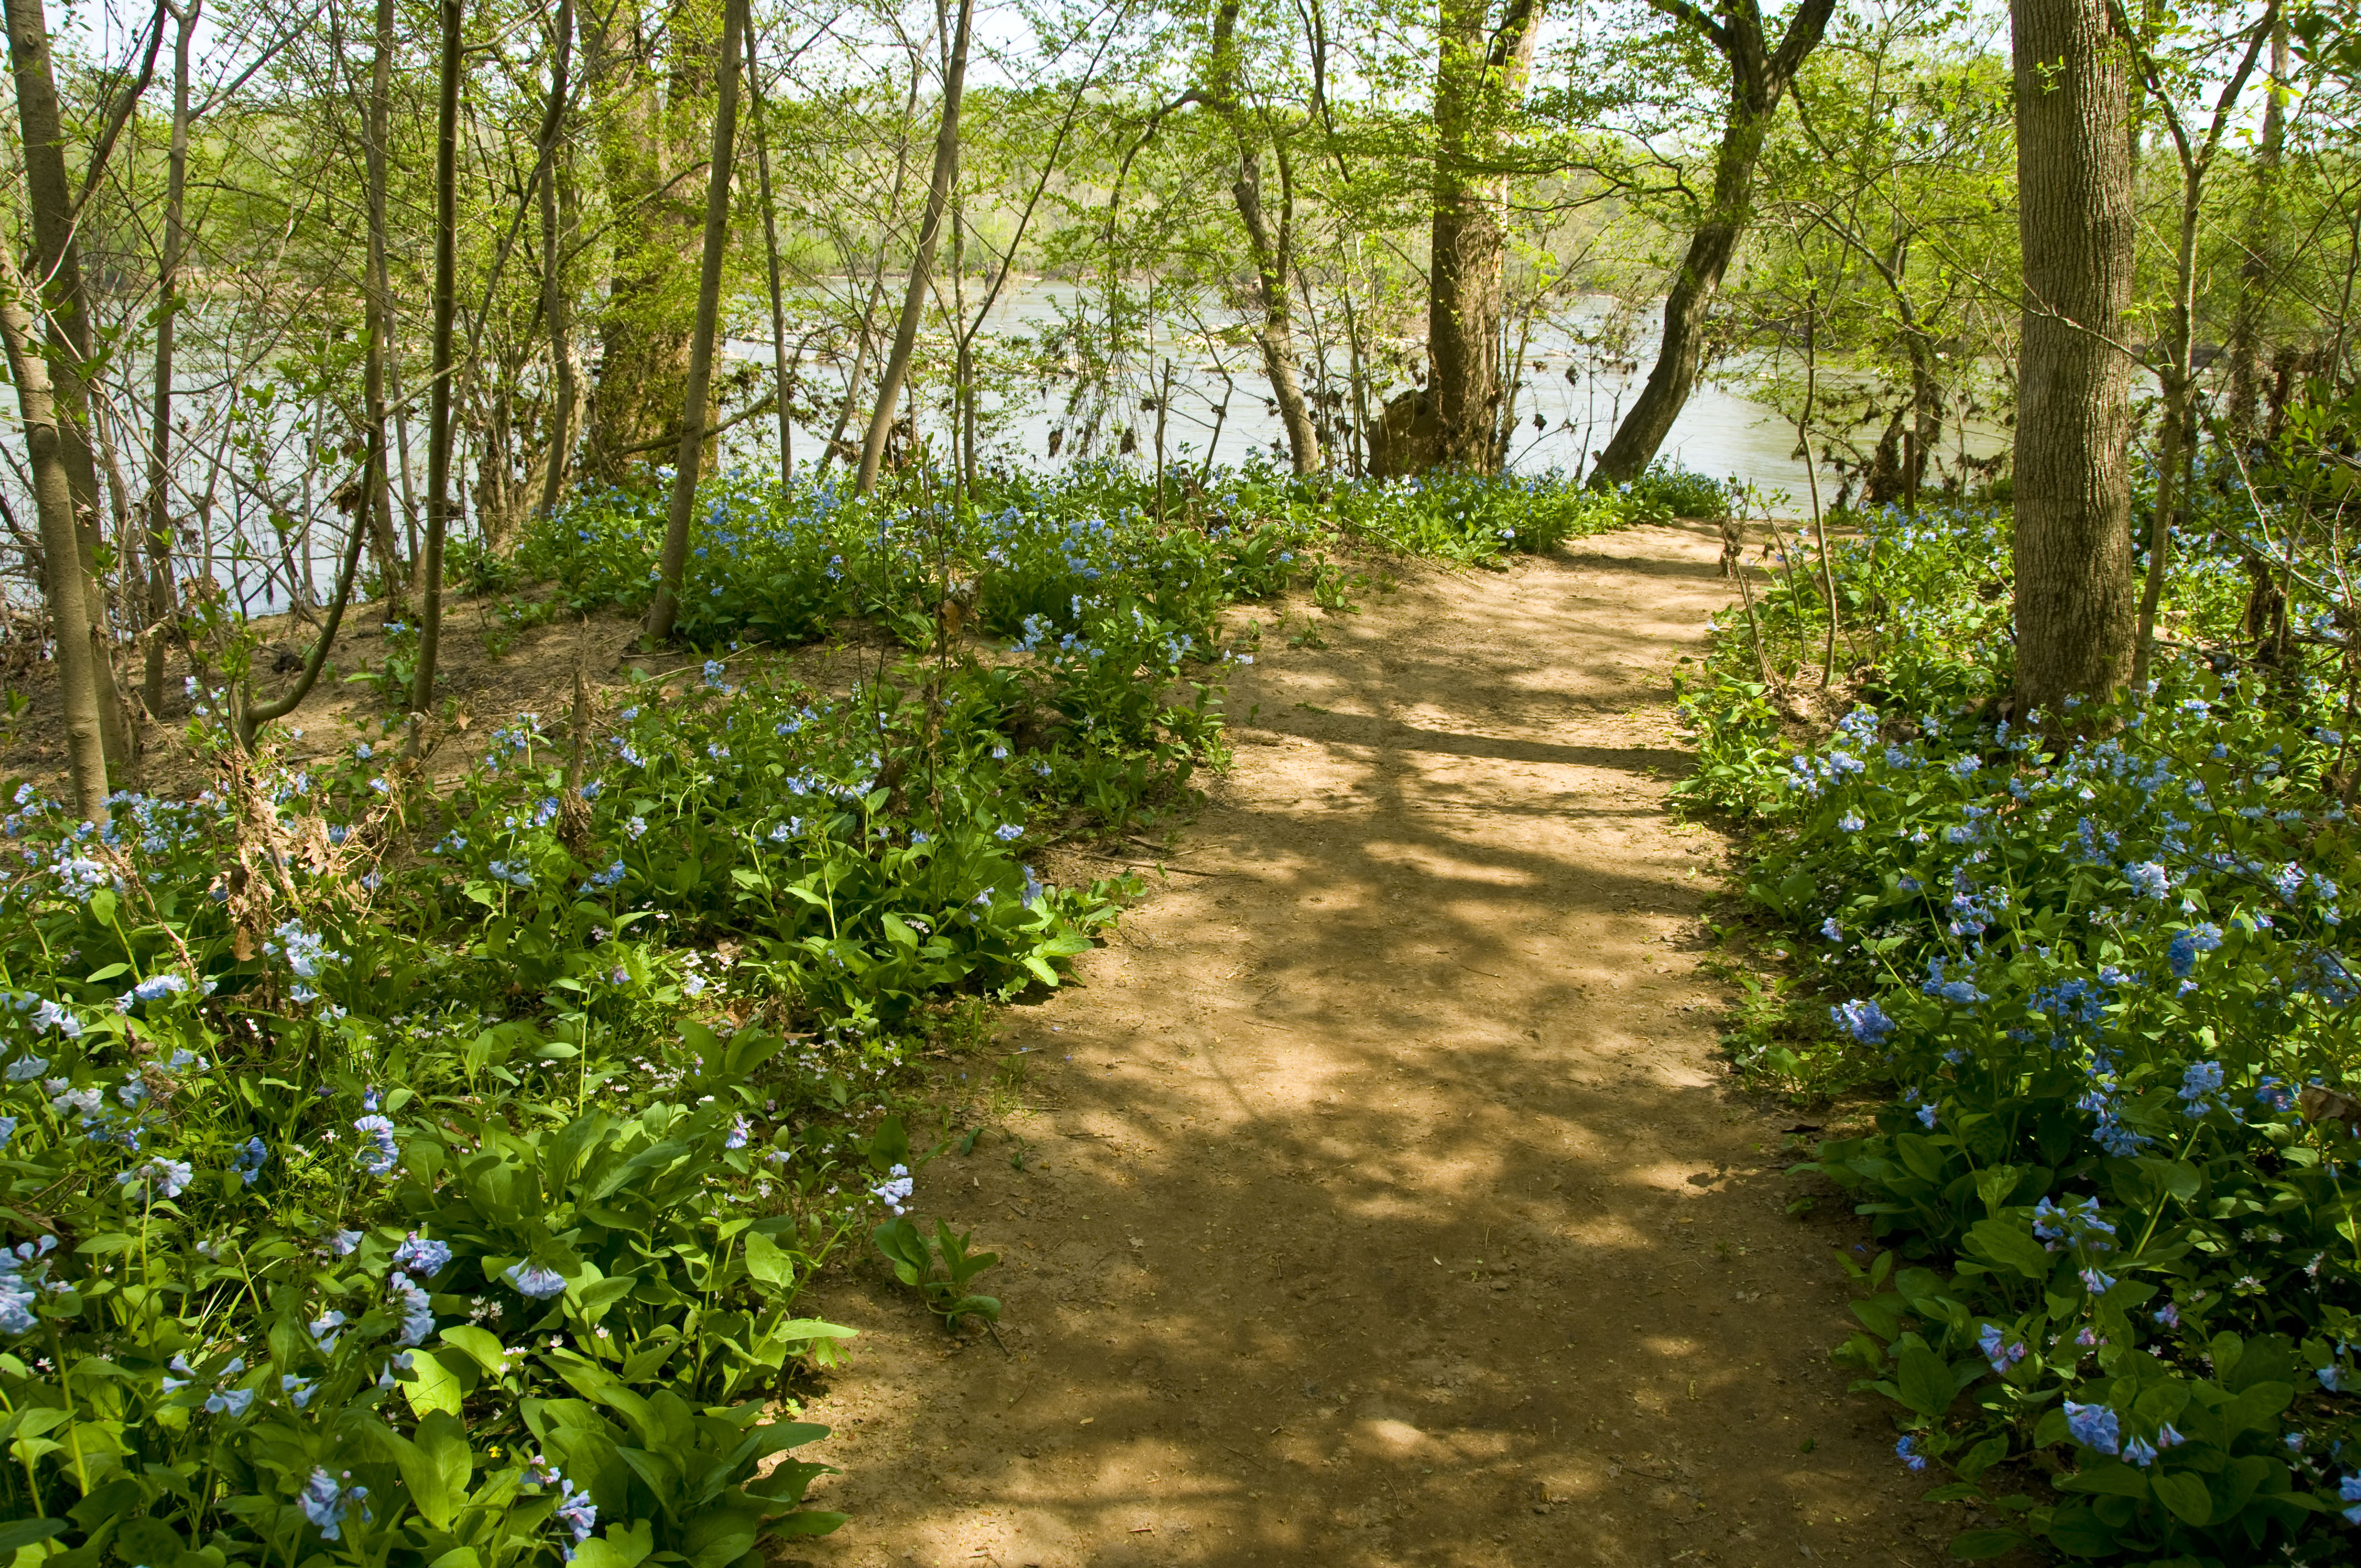 riverbend park fairfax va with Riverbends Bluebell Watch Has Begun on Skyline Drive Foliage Check also Mimus 20polyglottos moreover July 4th Weekend 2016 Northern Virginia further Wild And Wonderful Virginia Bluebells At Riverbend Park besides 8 Great Things To Do In Great Falls Virginia.